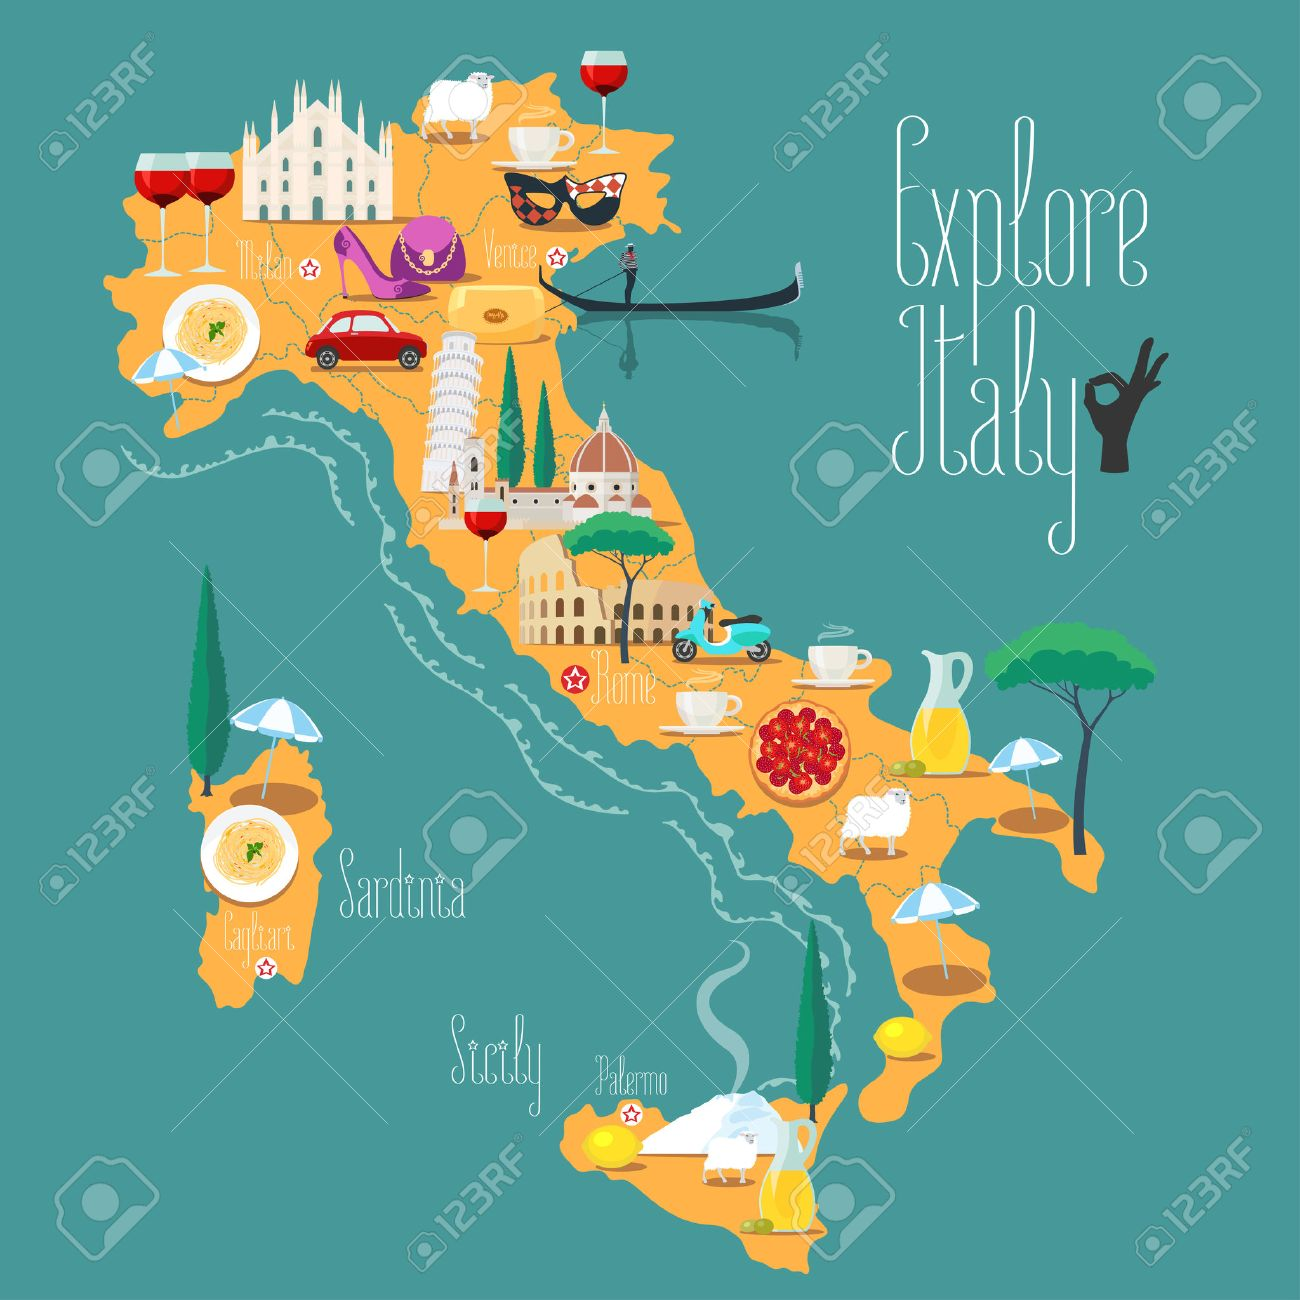 Map of Italy vector illustration, design. Icons with Italian Colosseum, pizza, wine, cathedral. Sicilia and Sardinia islands. Explore Italy concept image - 58992660